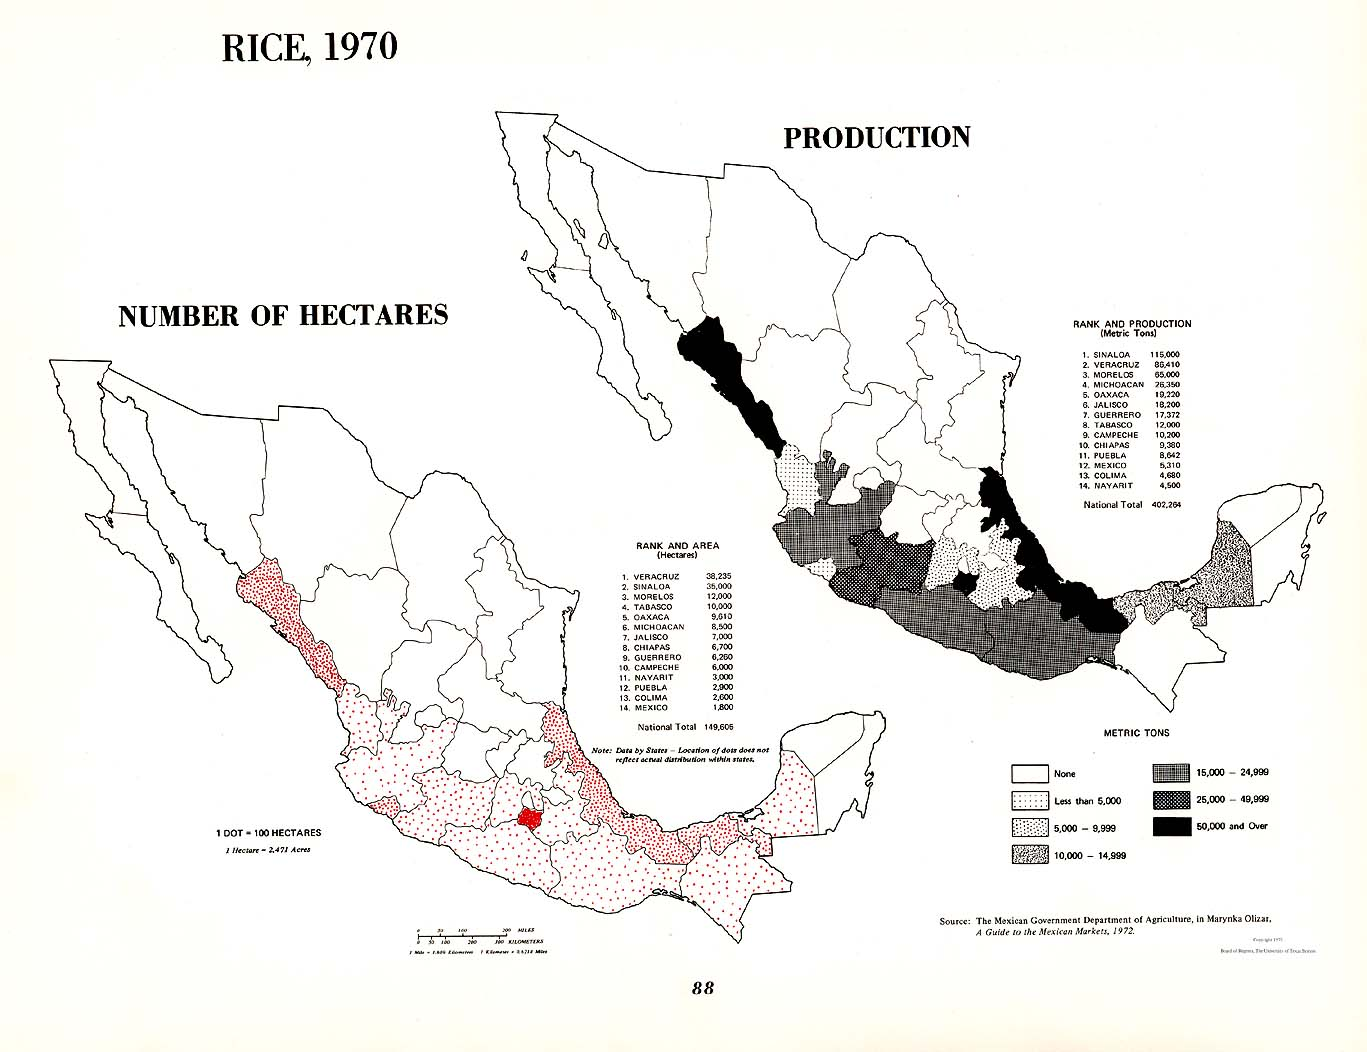 Rice Production in Mexico 1970